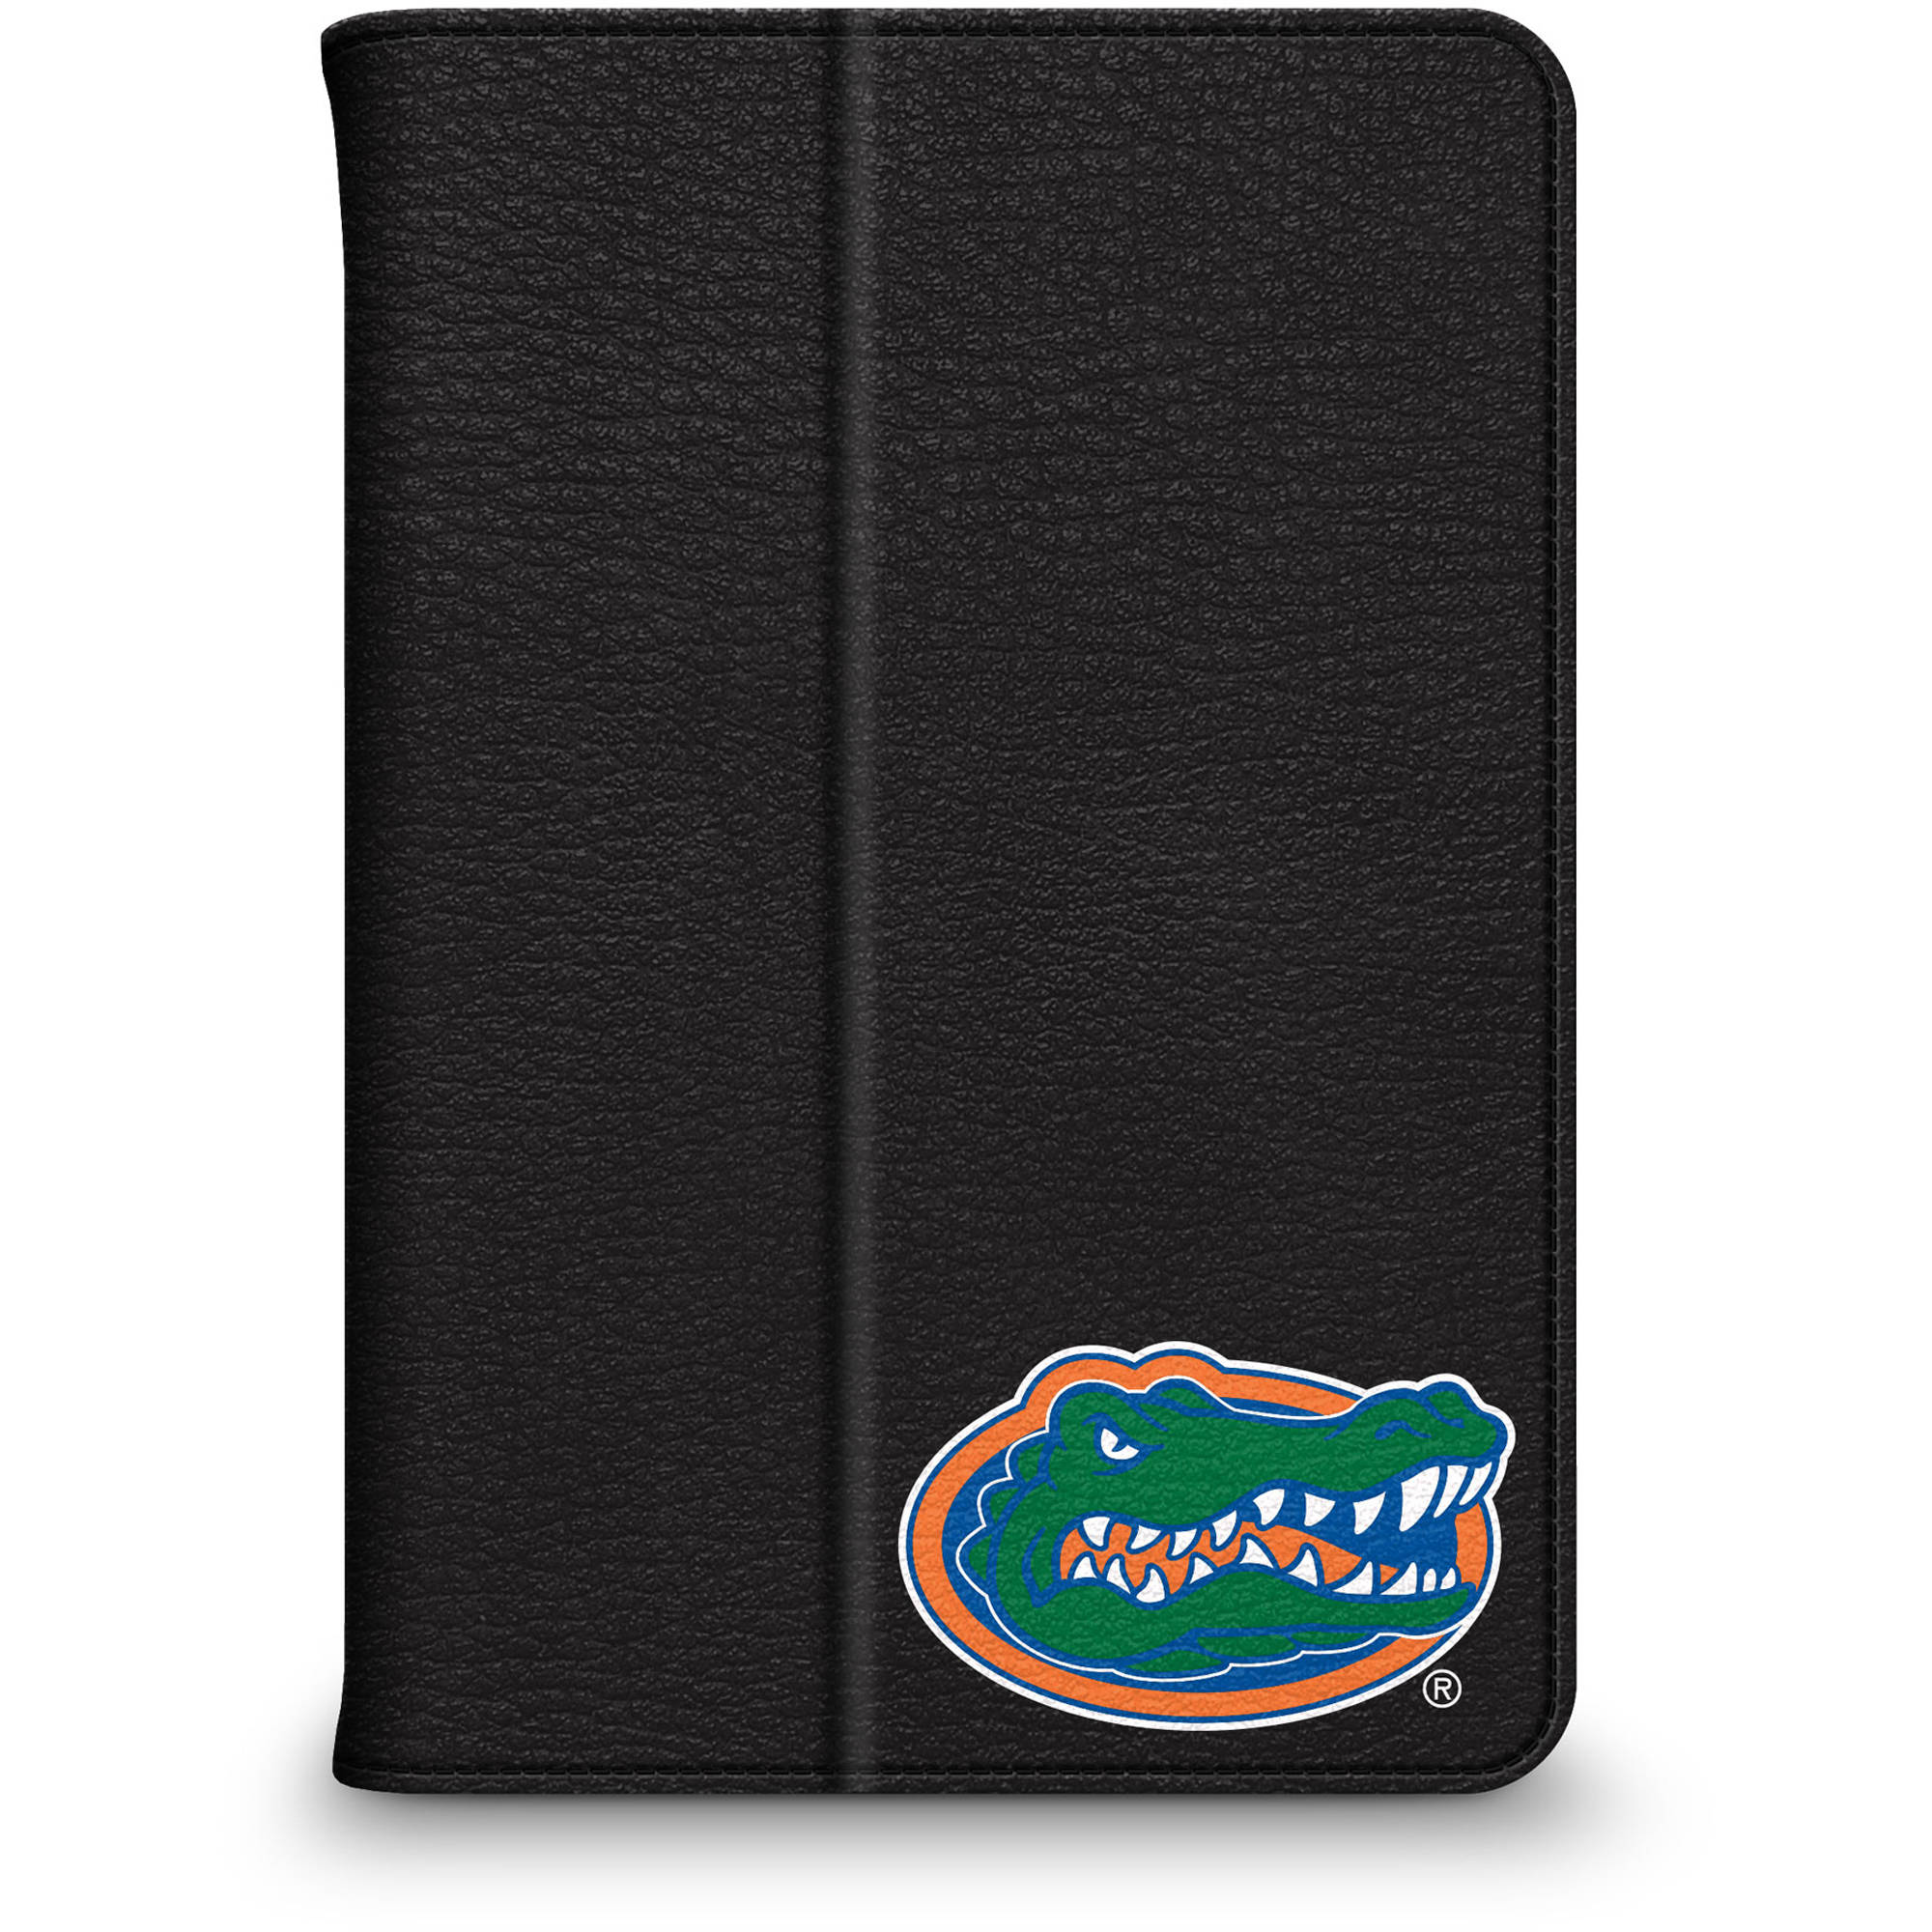 Apple iPad mini Leather Folio Case, University of Florida